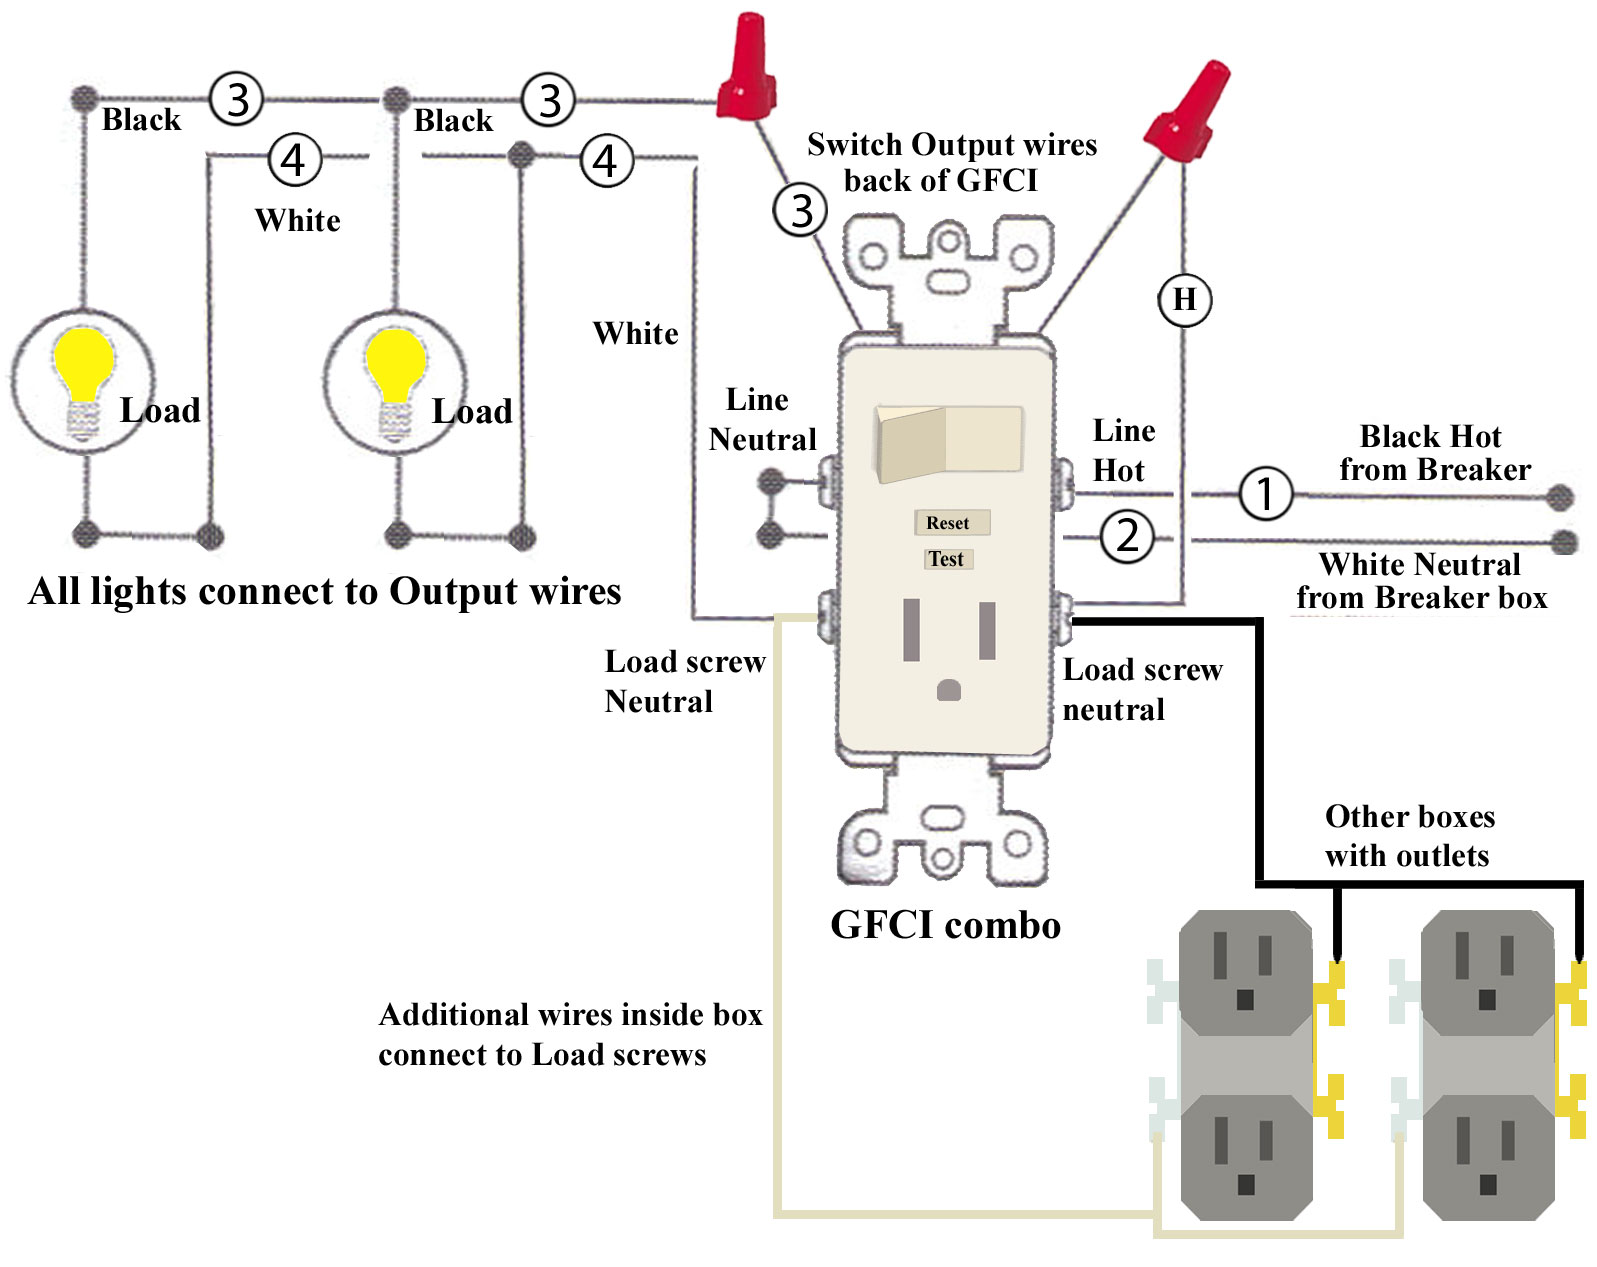 GFCI combo wiring3 update how to install and troubleshoot gfci leviton gfci wiring diagram at webbmarketing.co